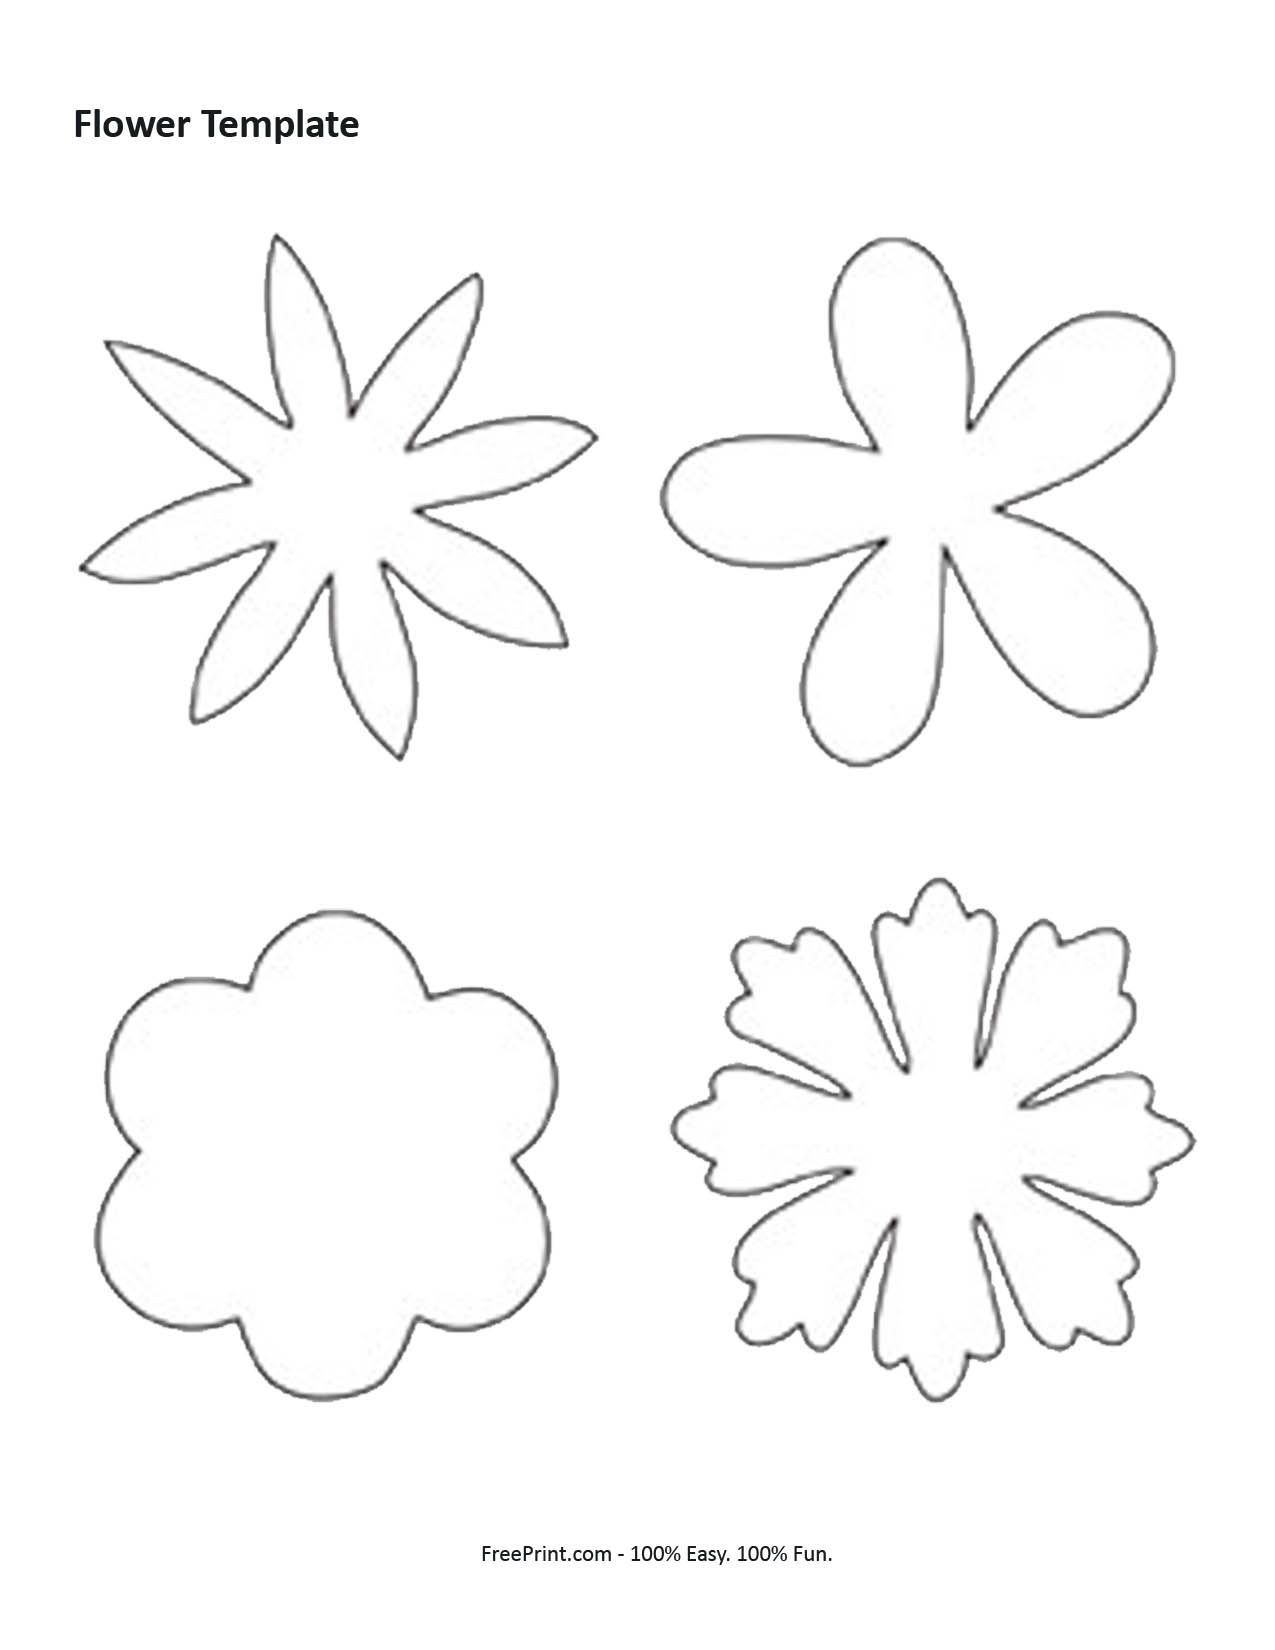 Customize Your Free Printable Flower Shaped Template